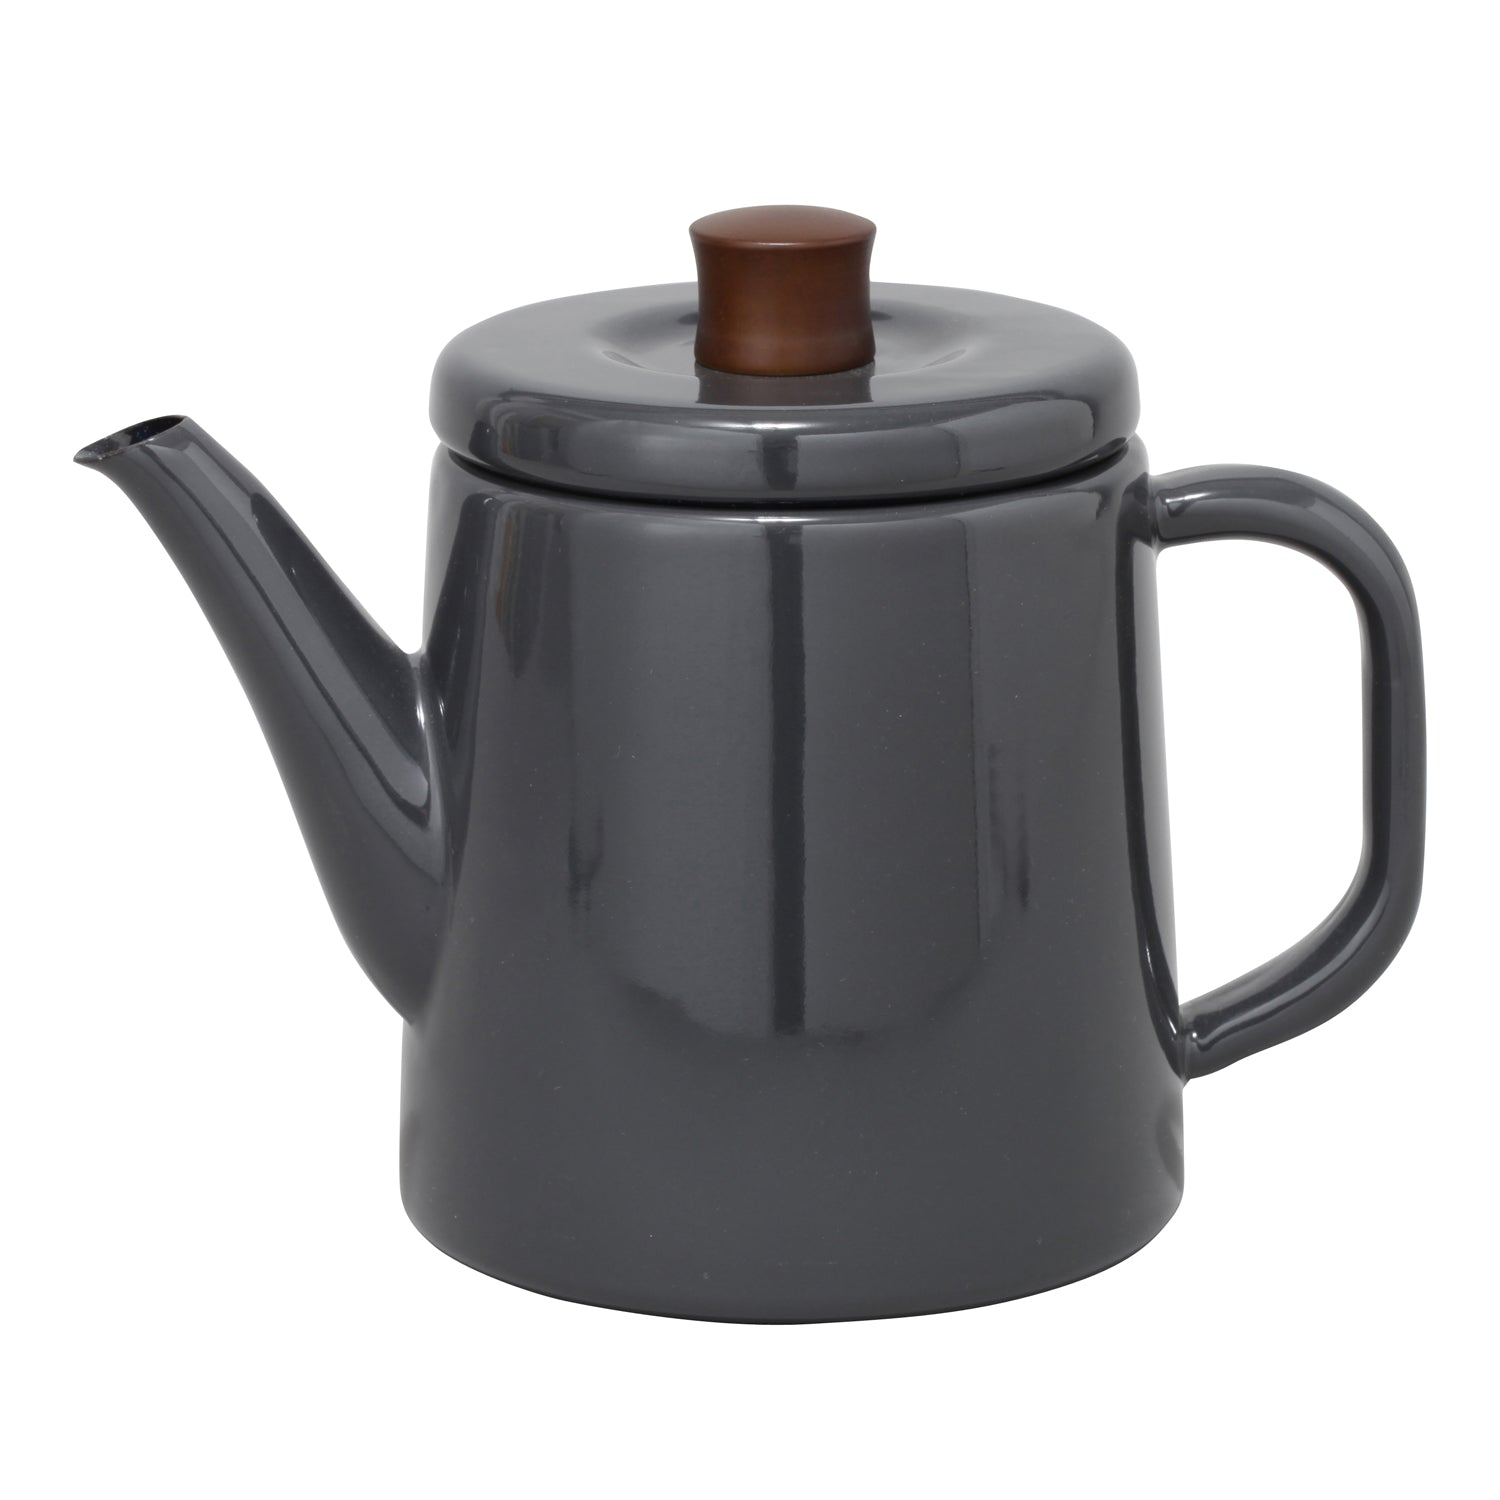 Enamel Teapot / Kettle (Grey)